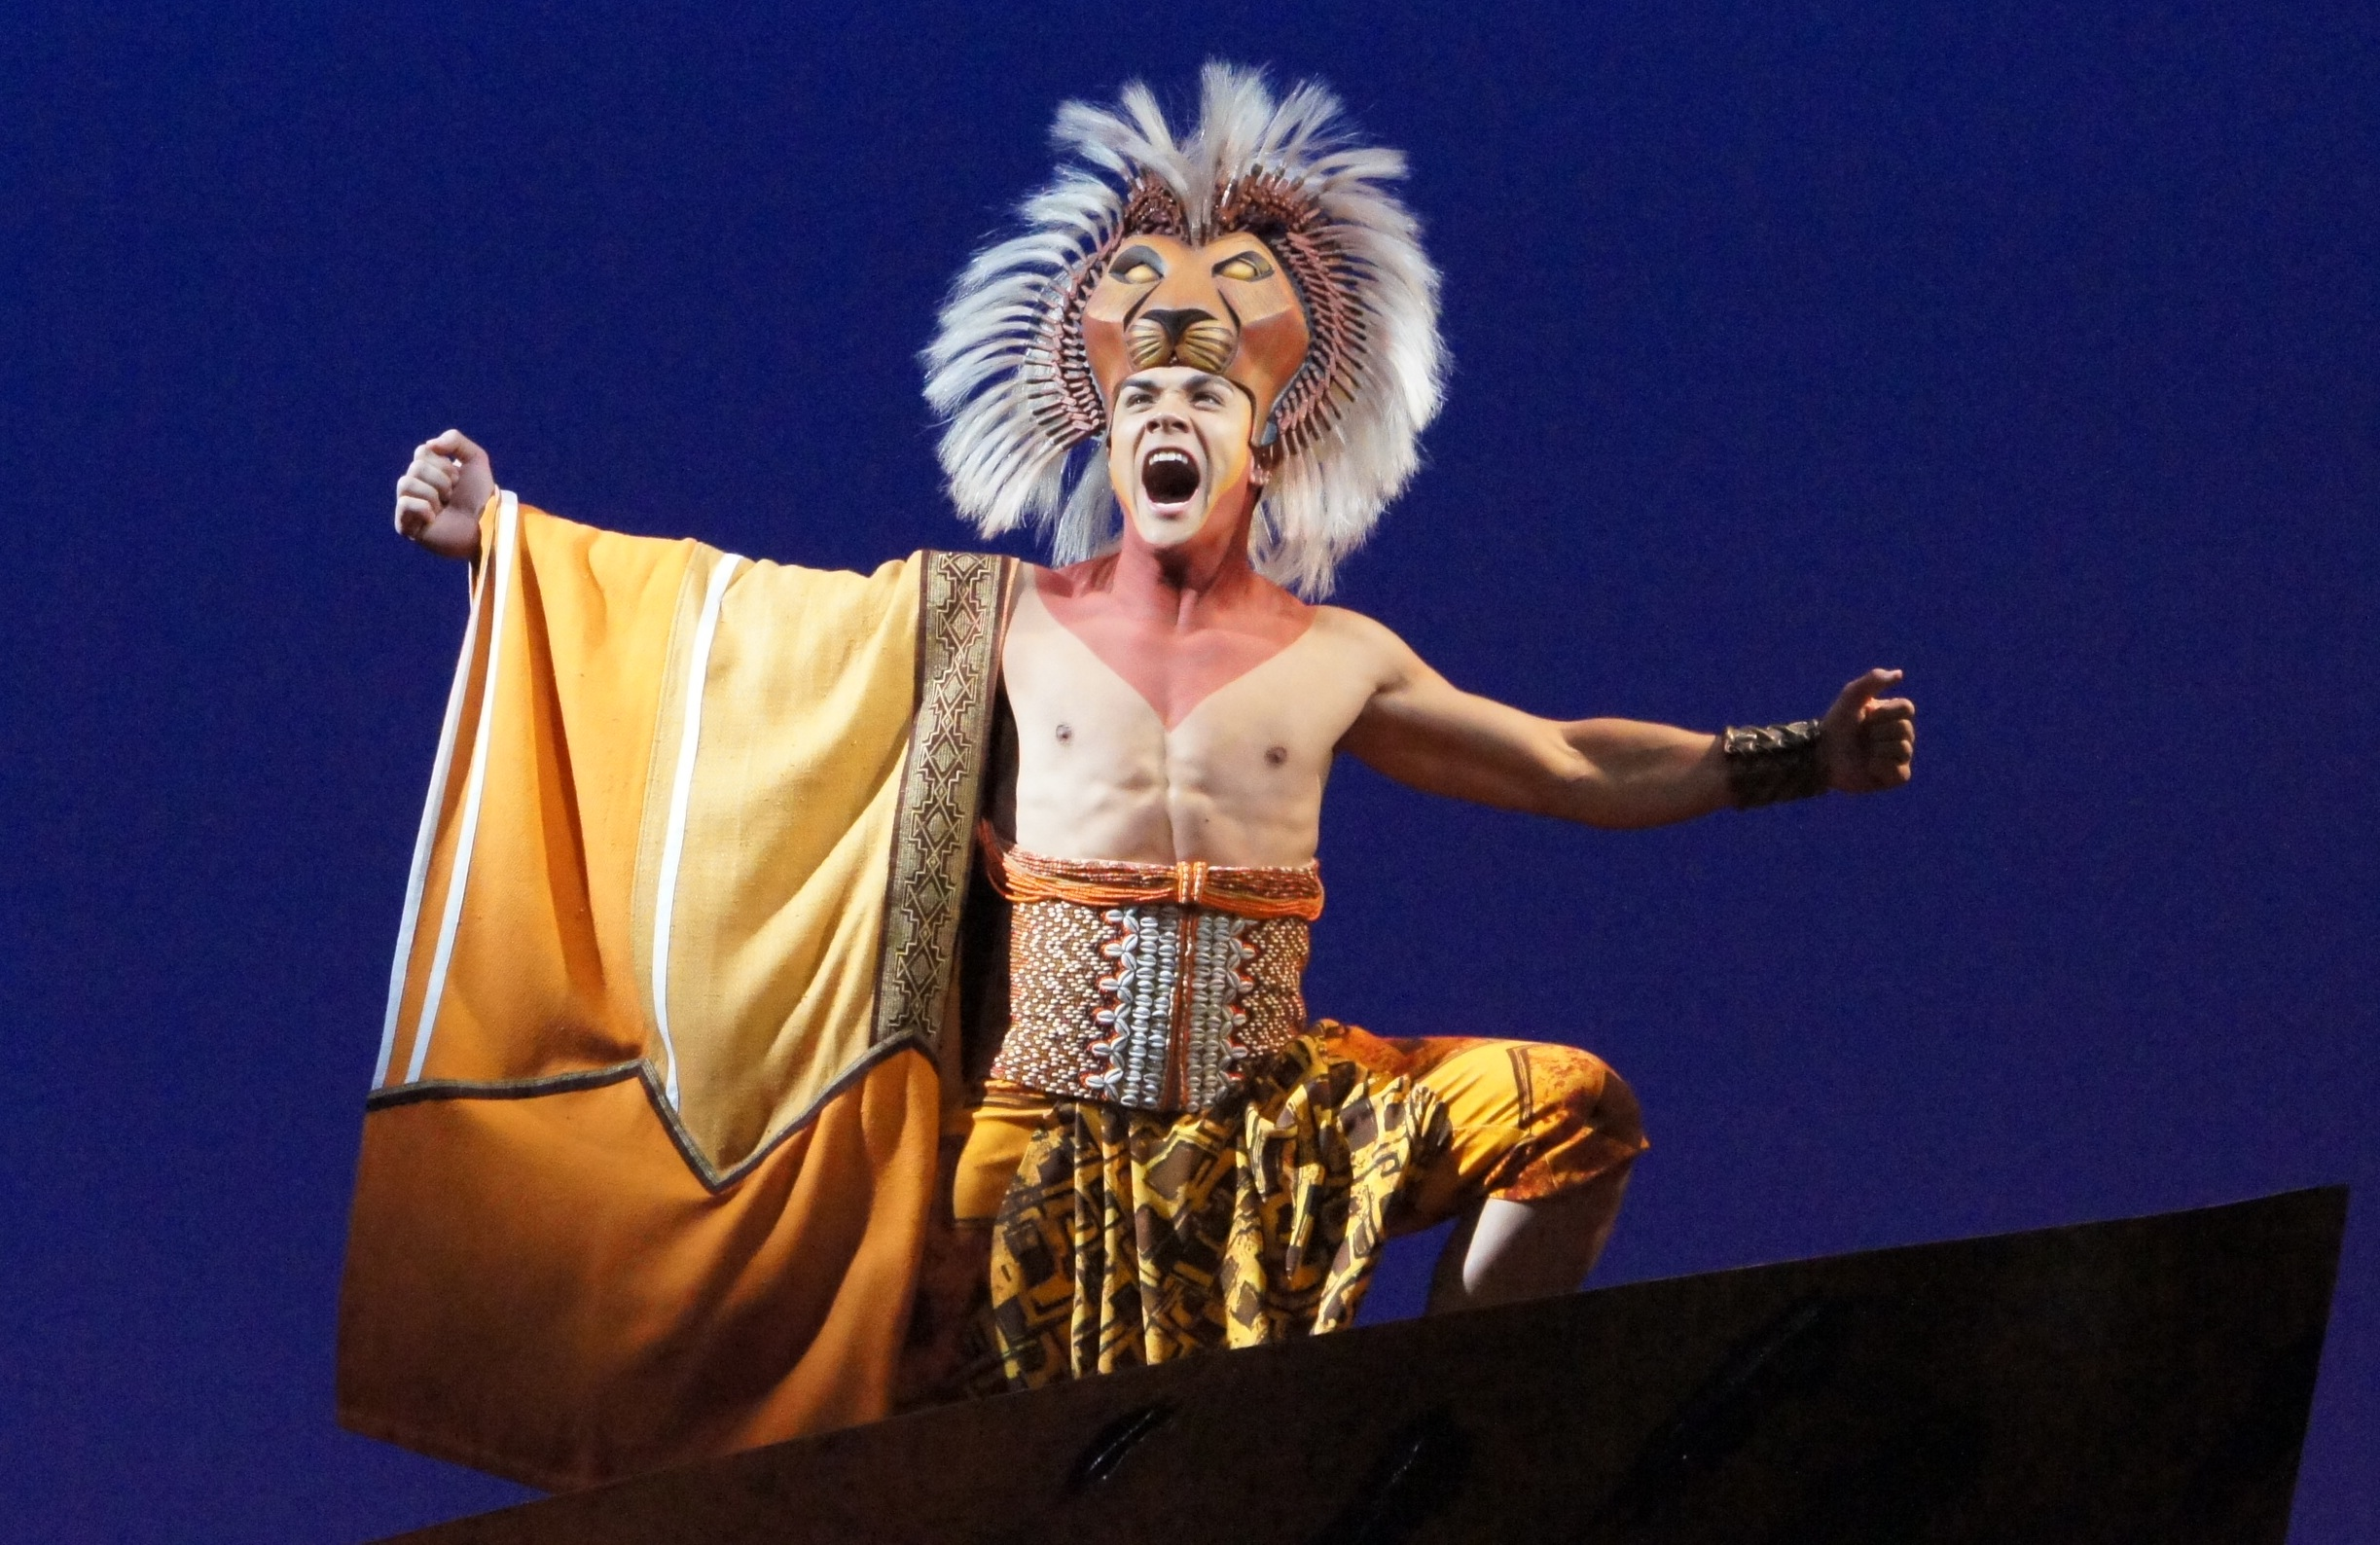 lion king the musical review The lion king is a musical based on the 1994 disney animated film of the same name with music by elton john and lyrics by tim rice along with the musical score.